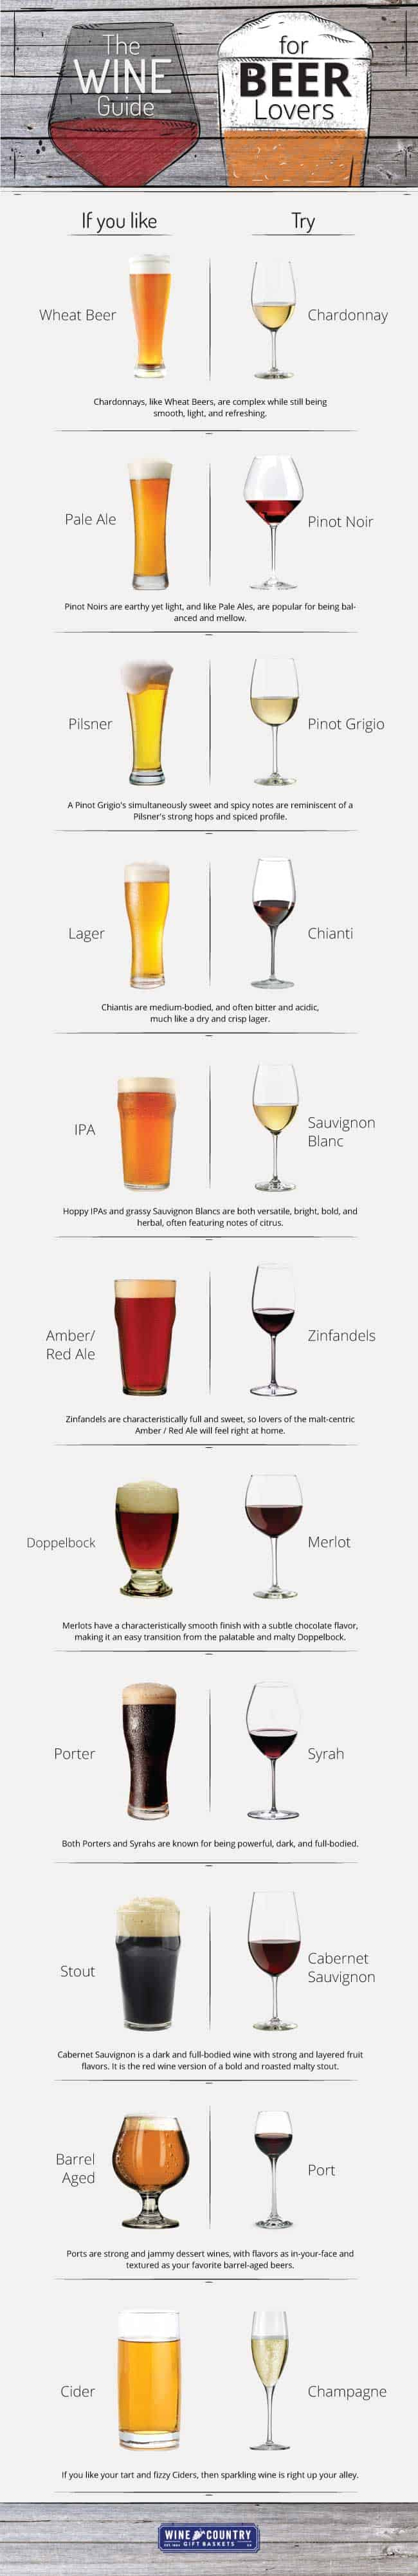 a guide to wine for beer lovers